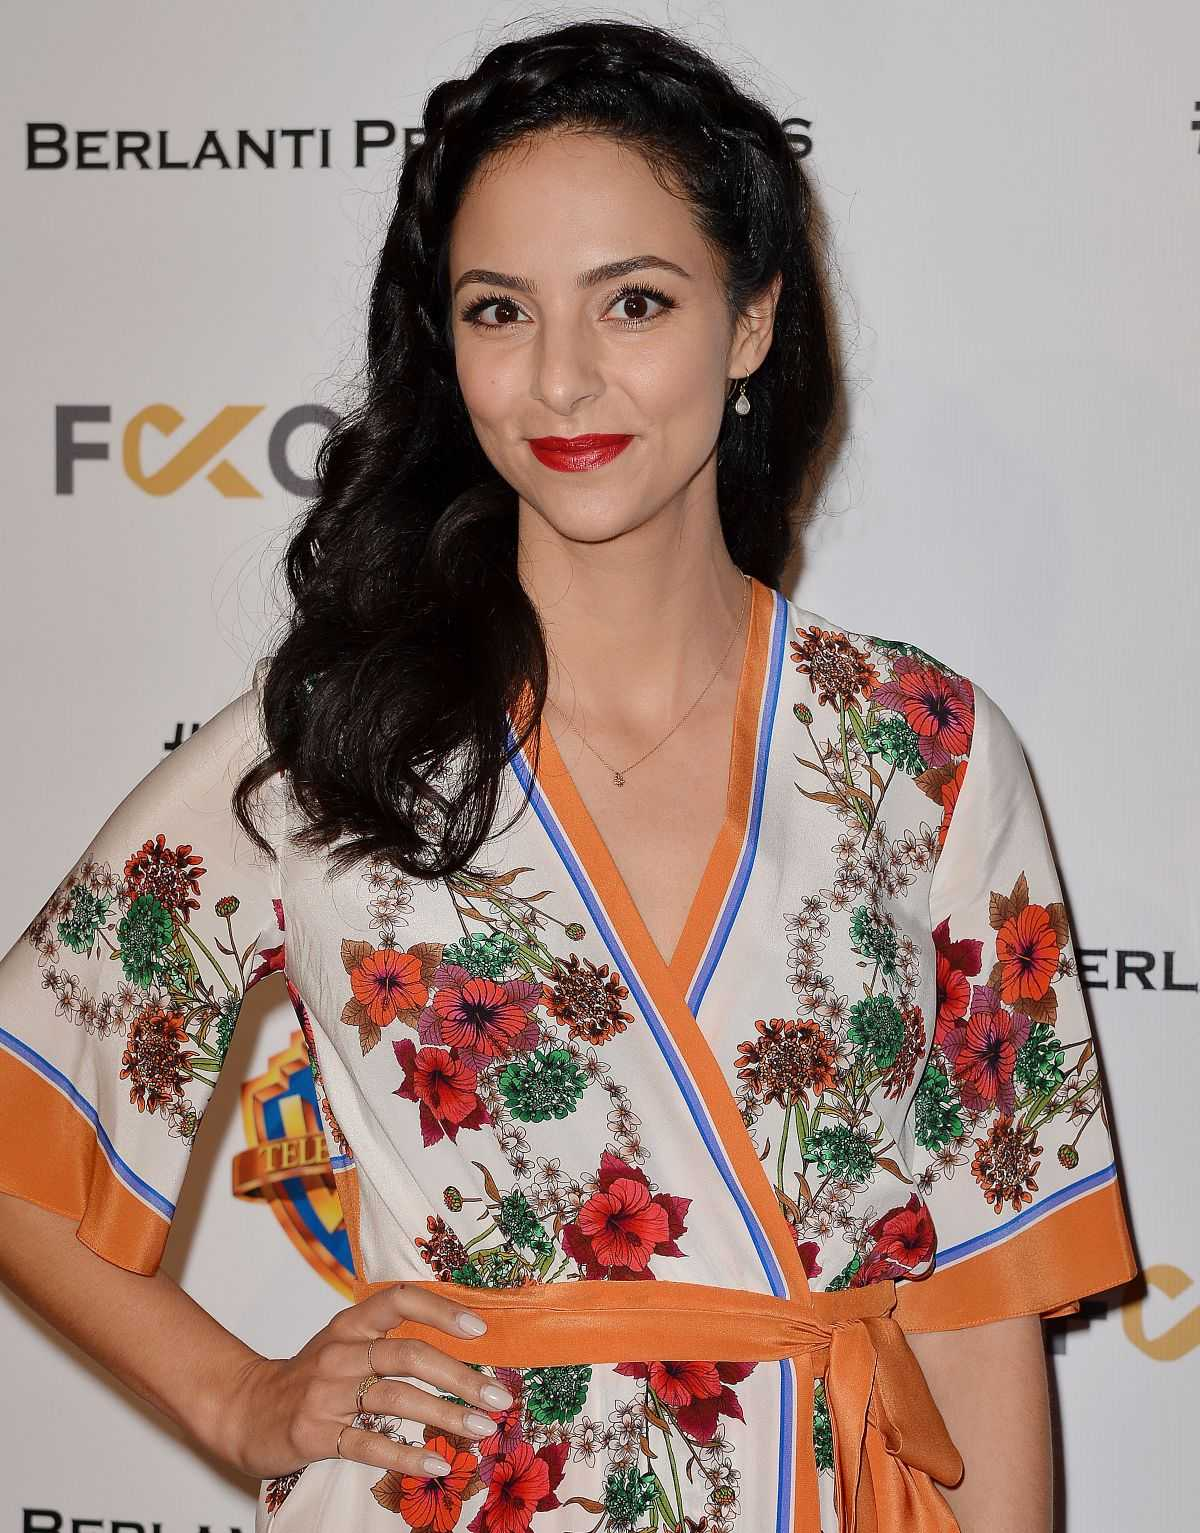 tala ashe cleavage